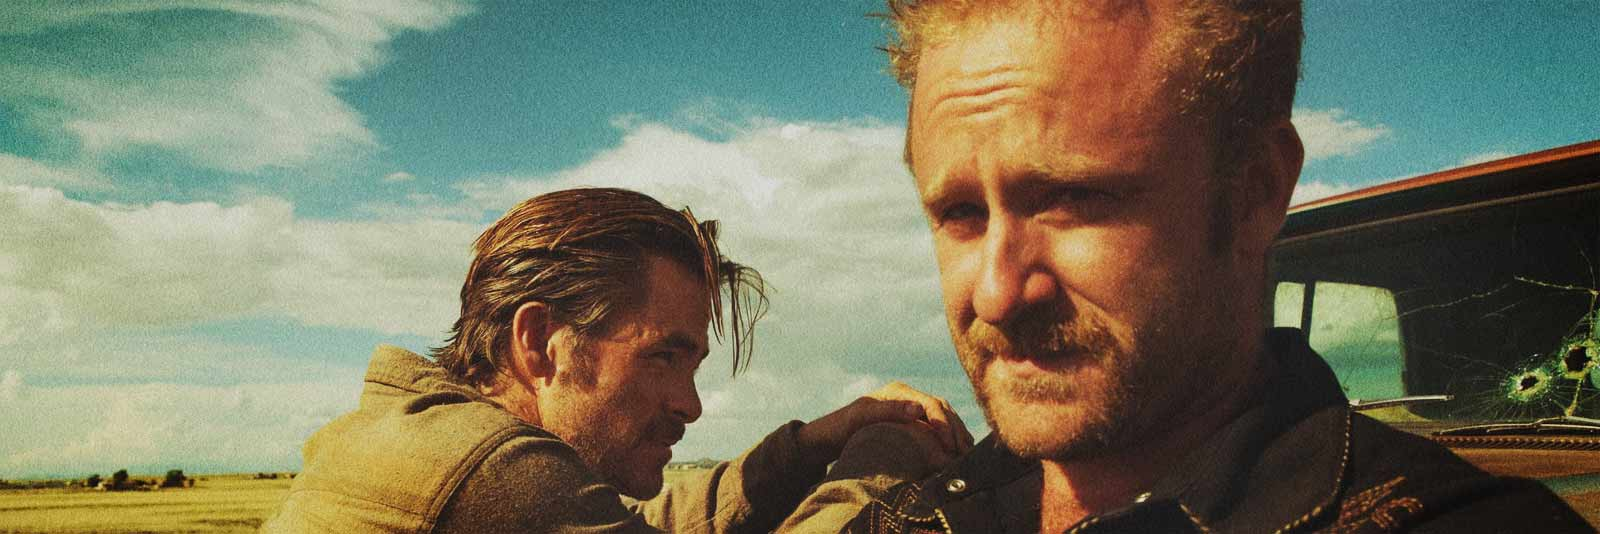 COMANCHERÍA // Hell or high water (David Mackenzie, 2016)